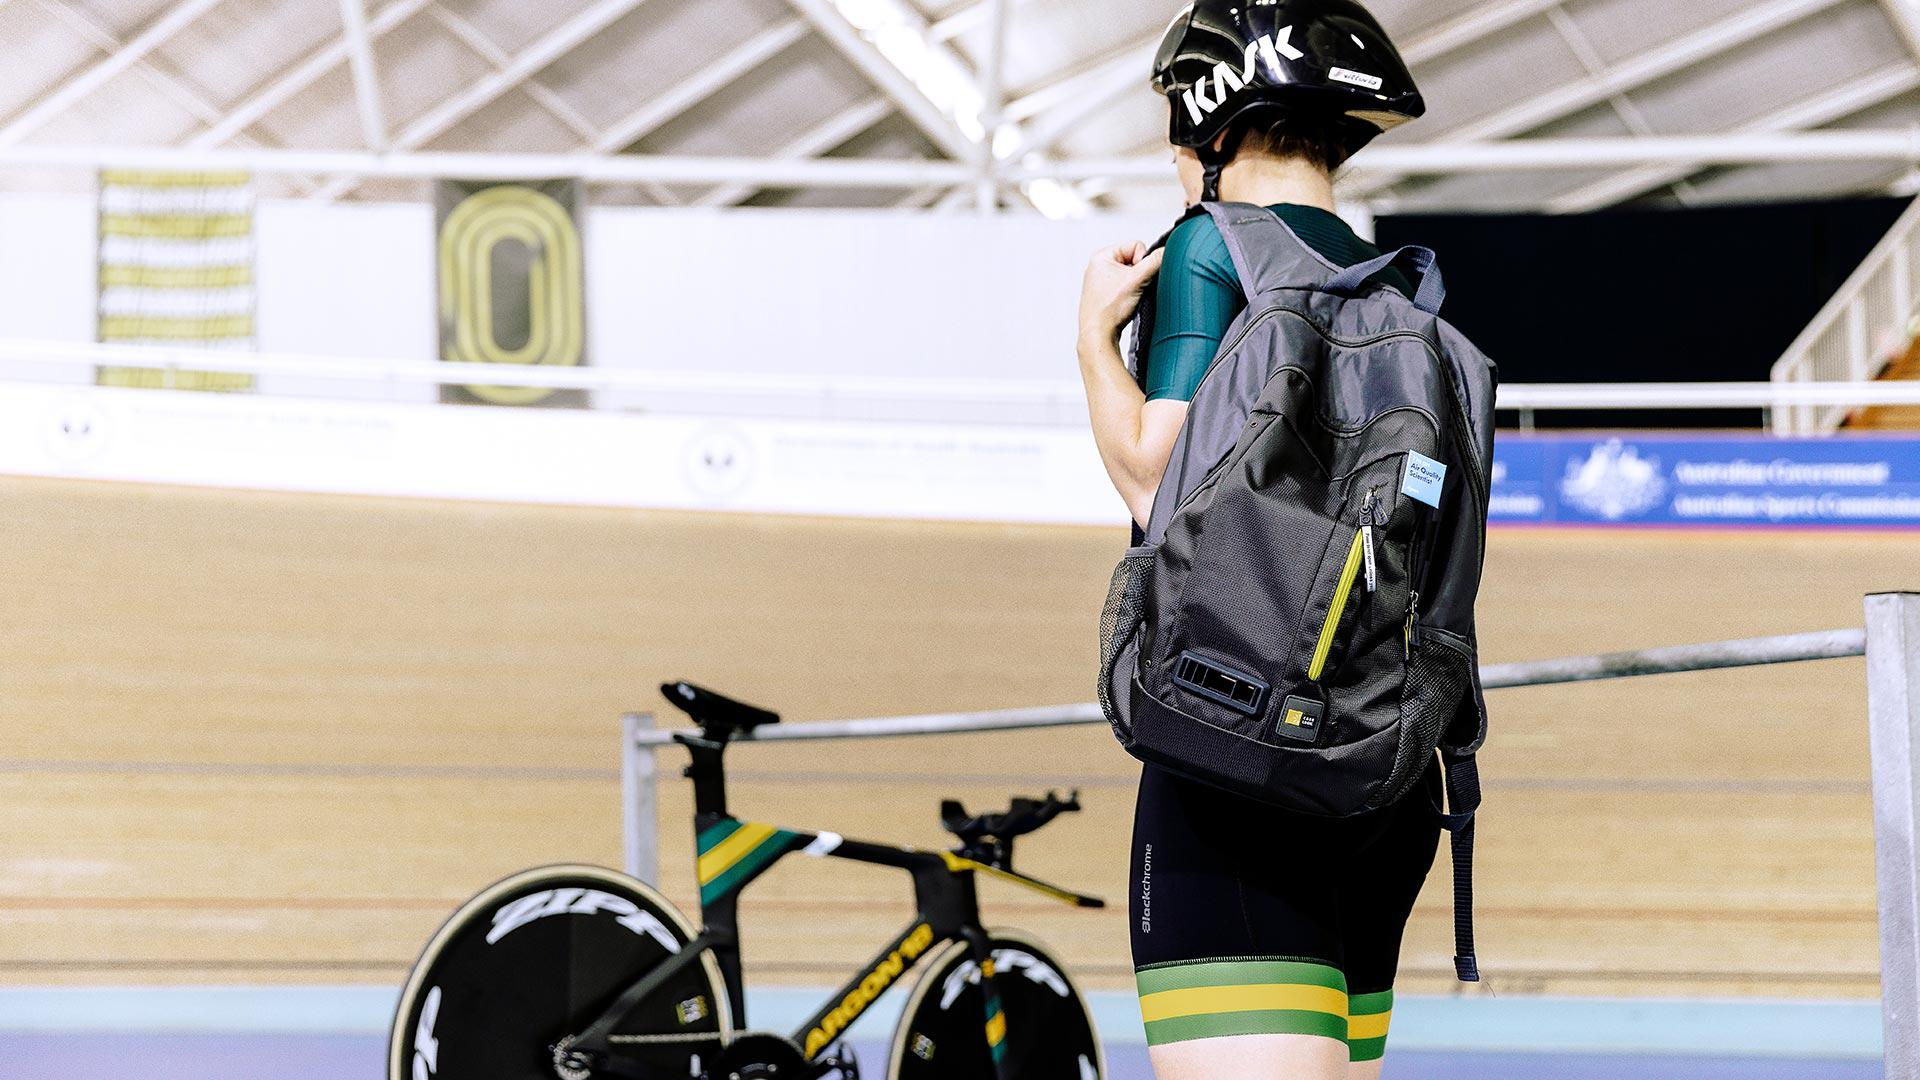 Annette Edmondson in veledrome with Dyson air quality backpack